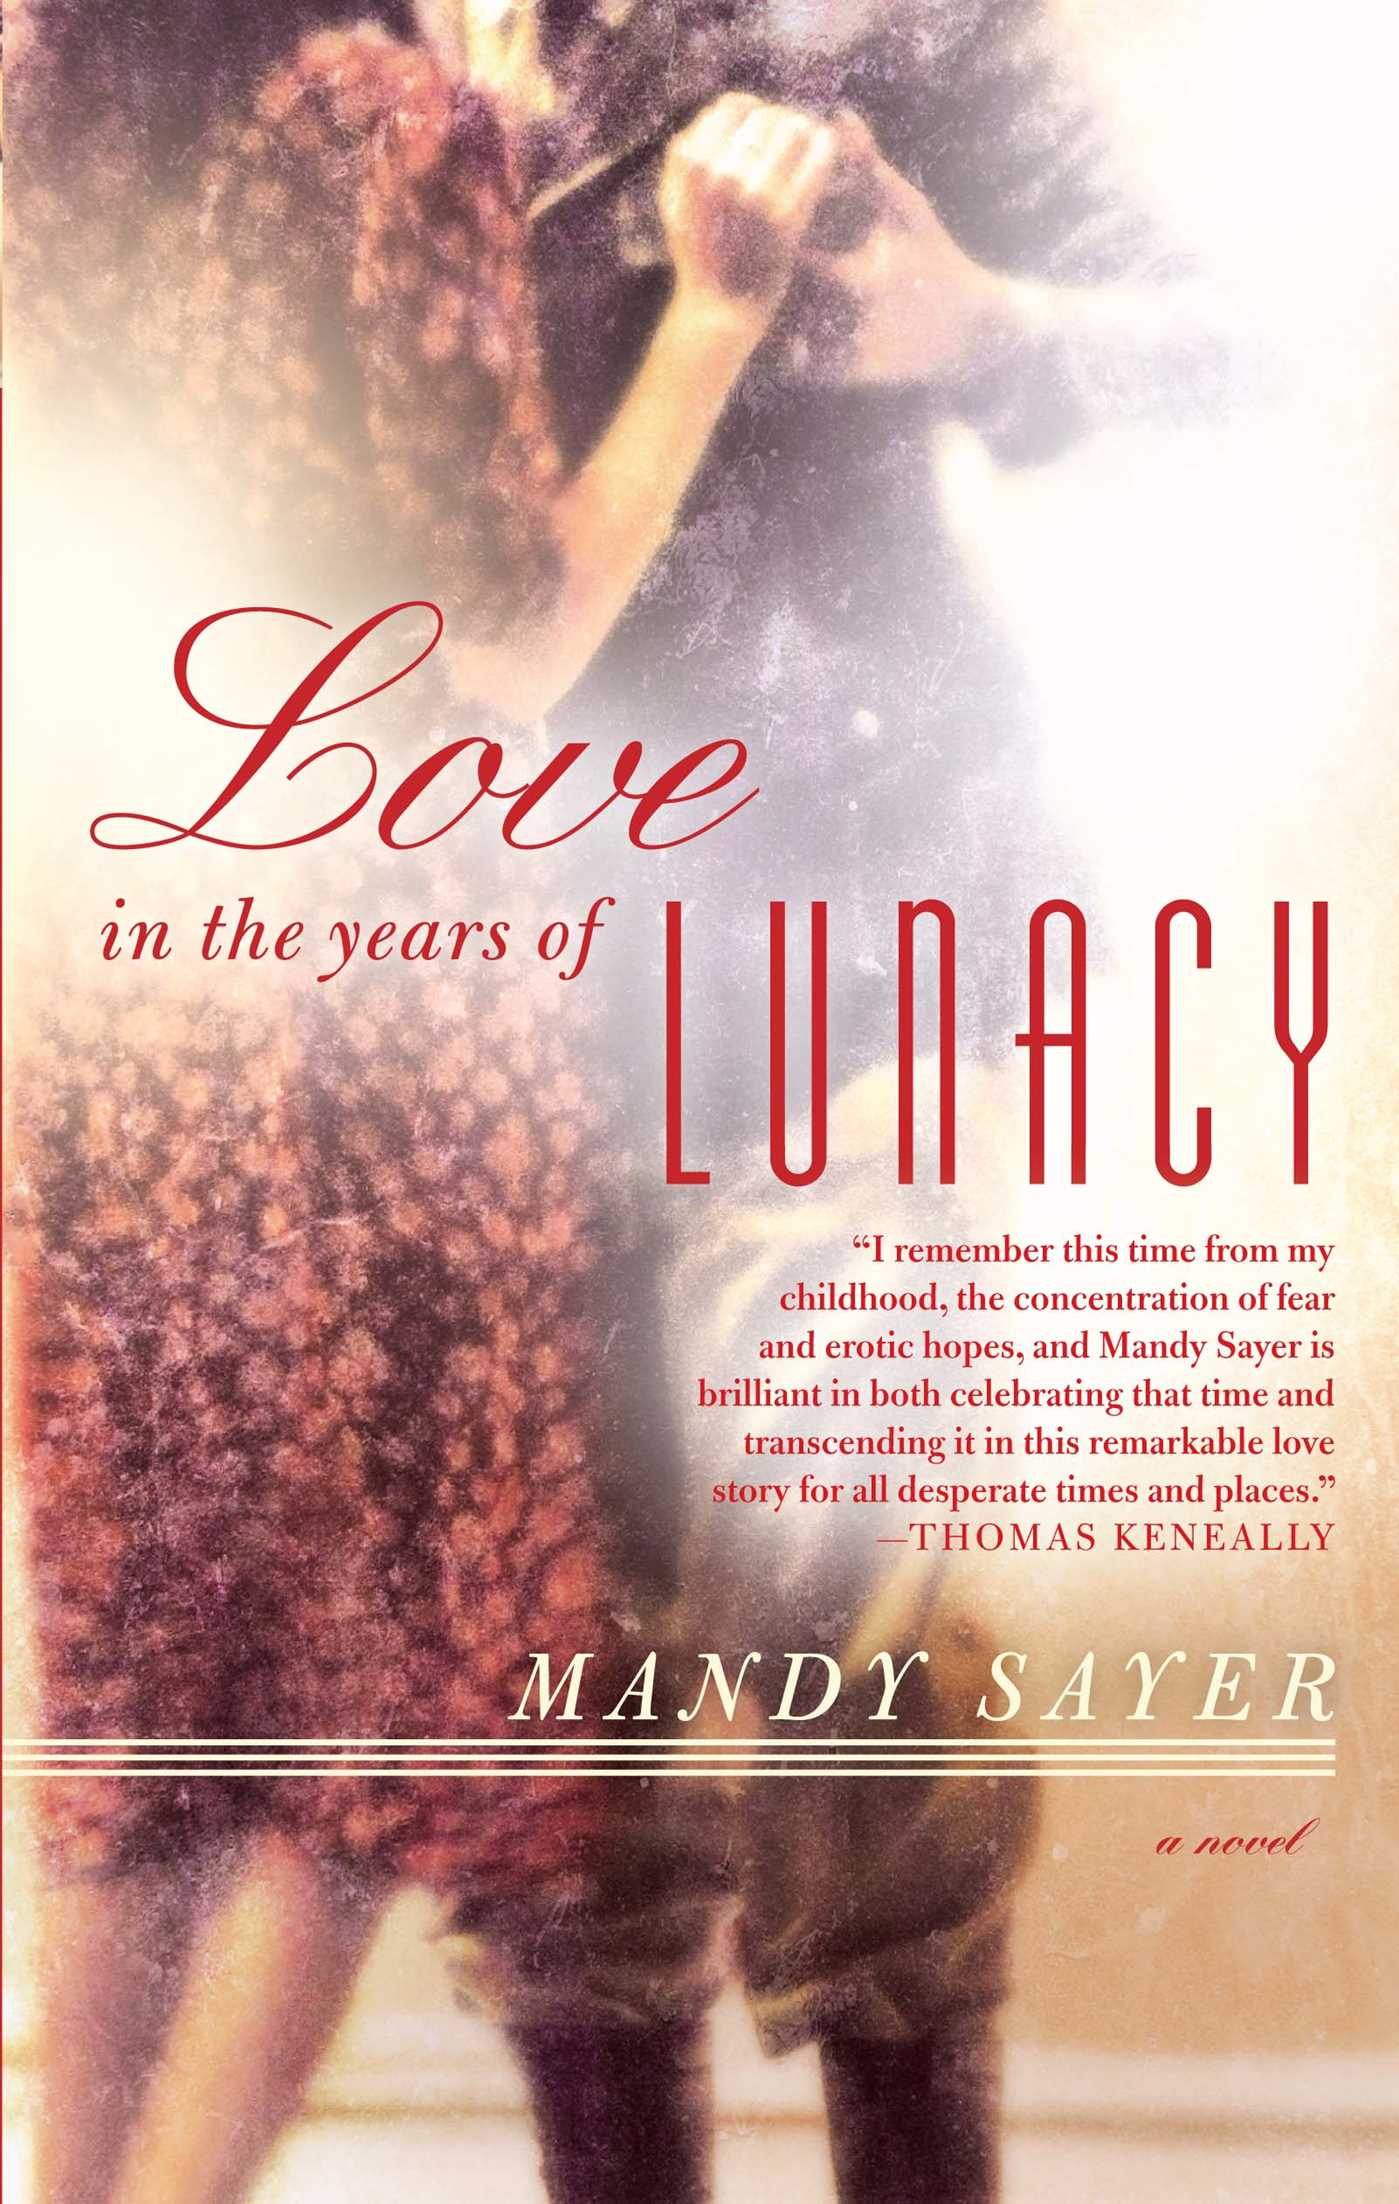 Love-in-the-years-of-lunacy-9781451678468_hr